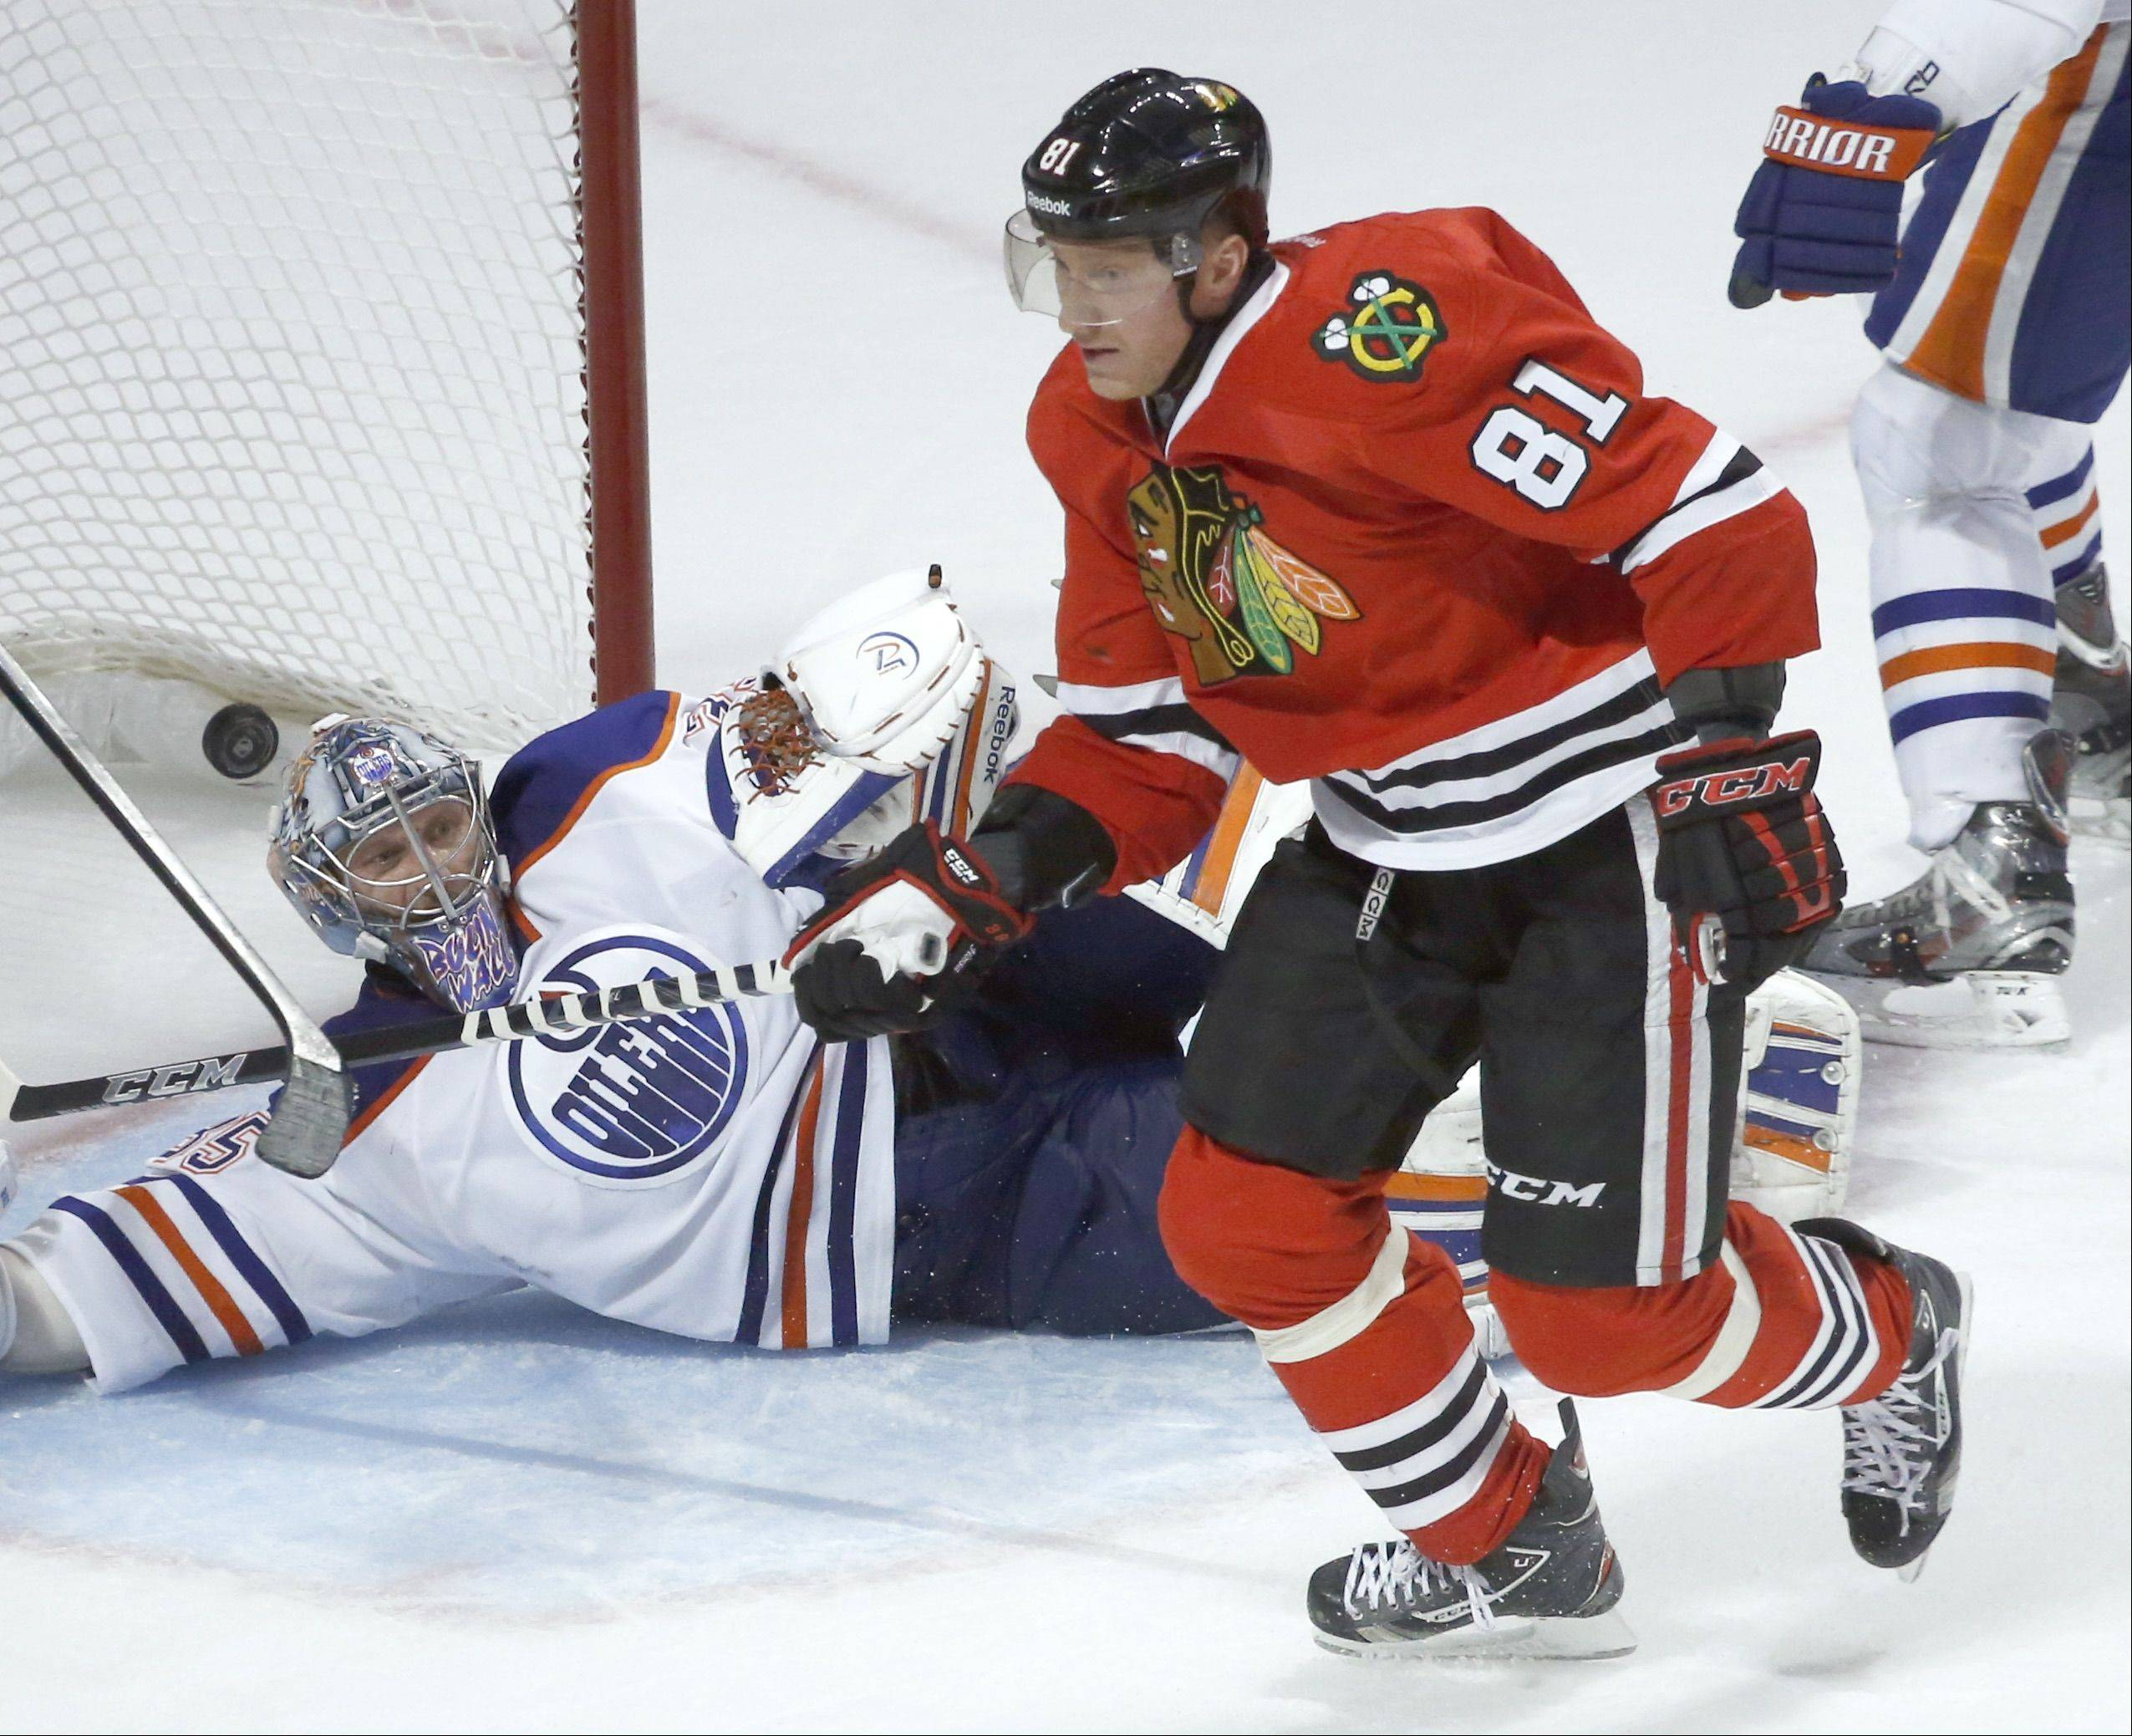 Hossa goal turns 1 point into 2 for Hawks